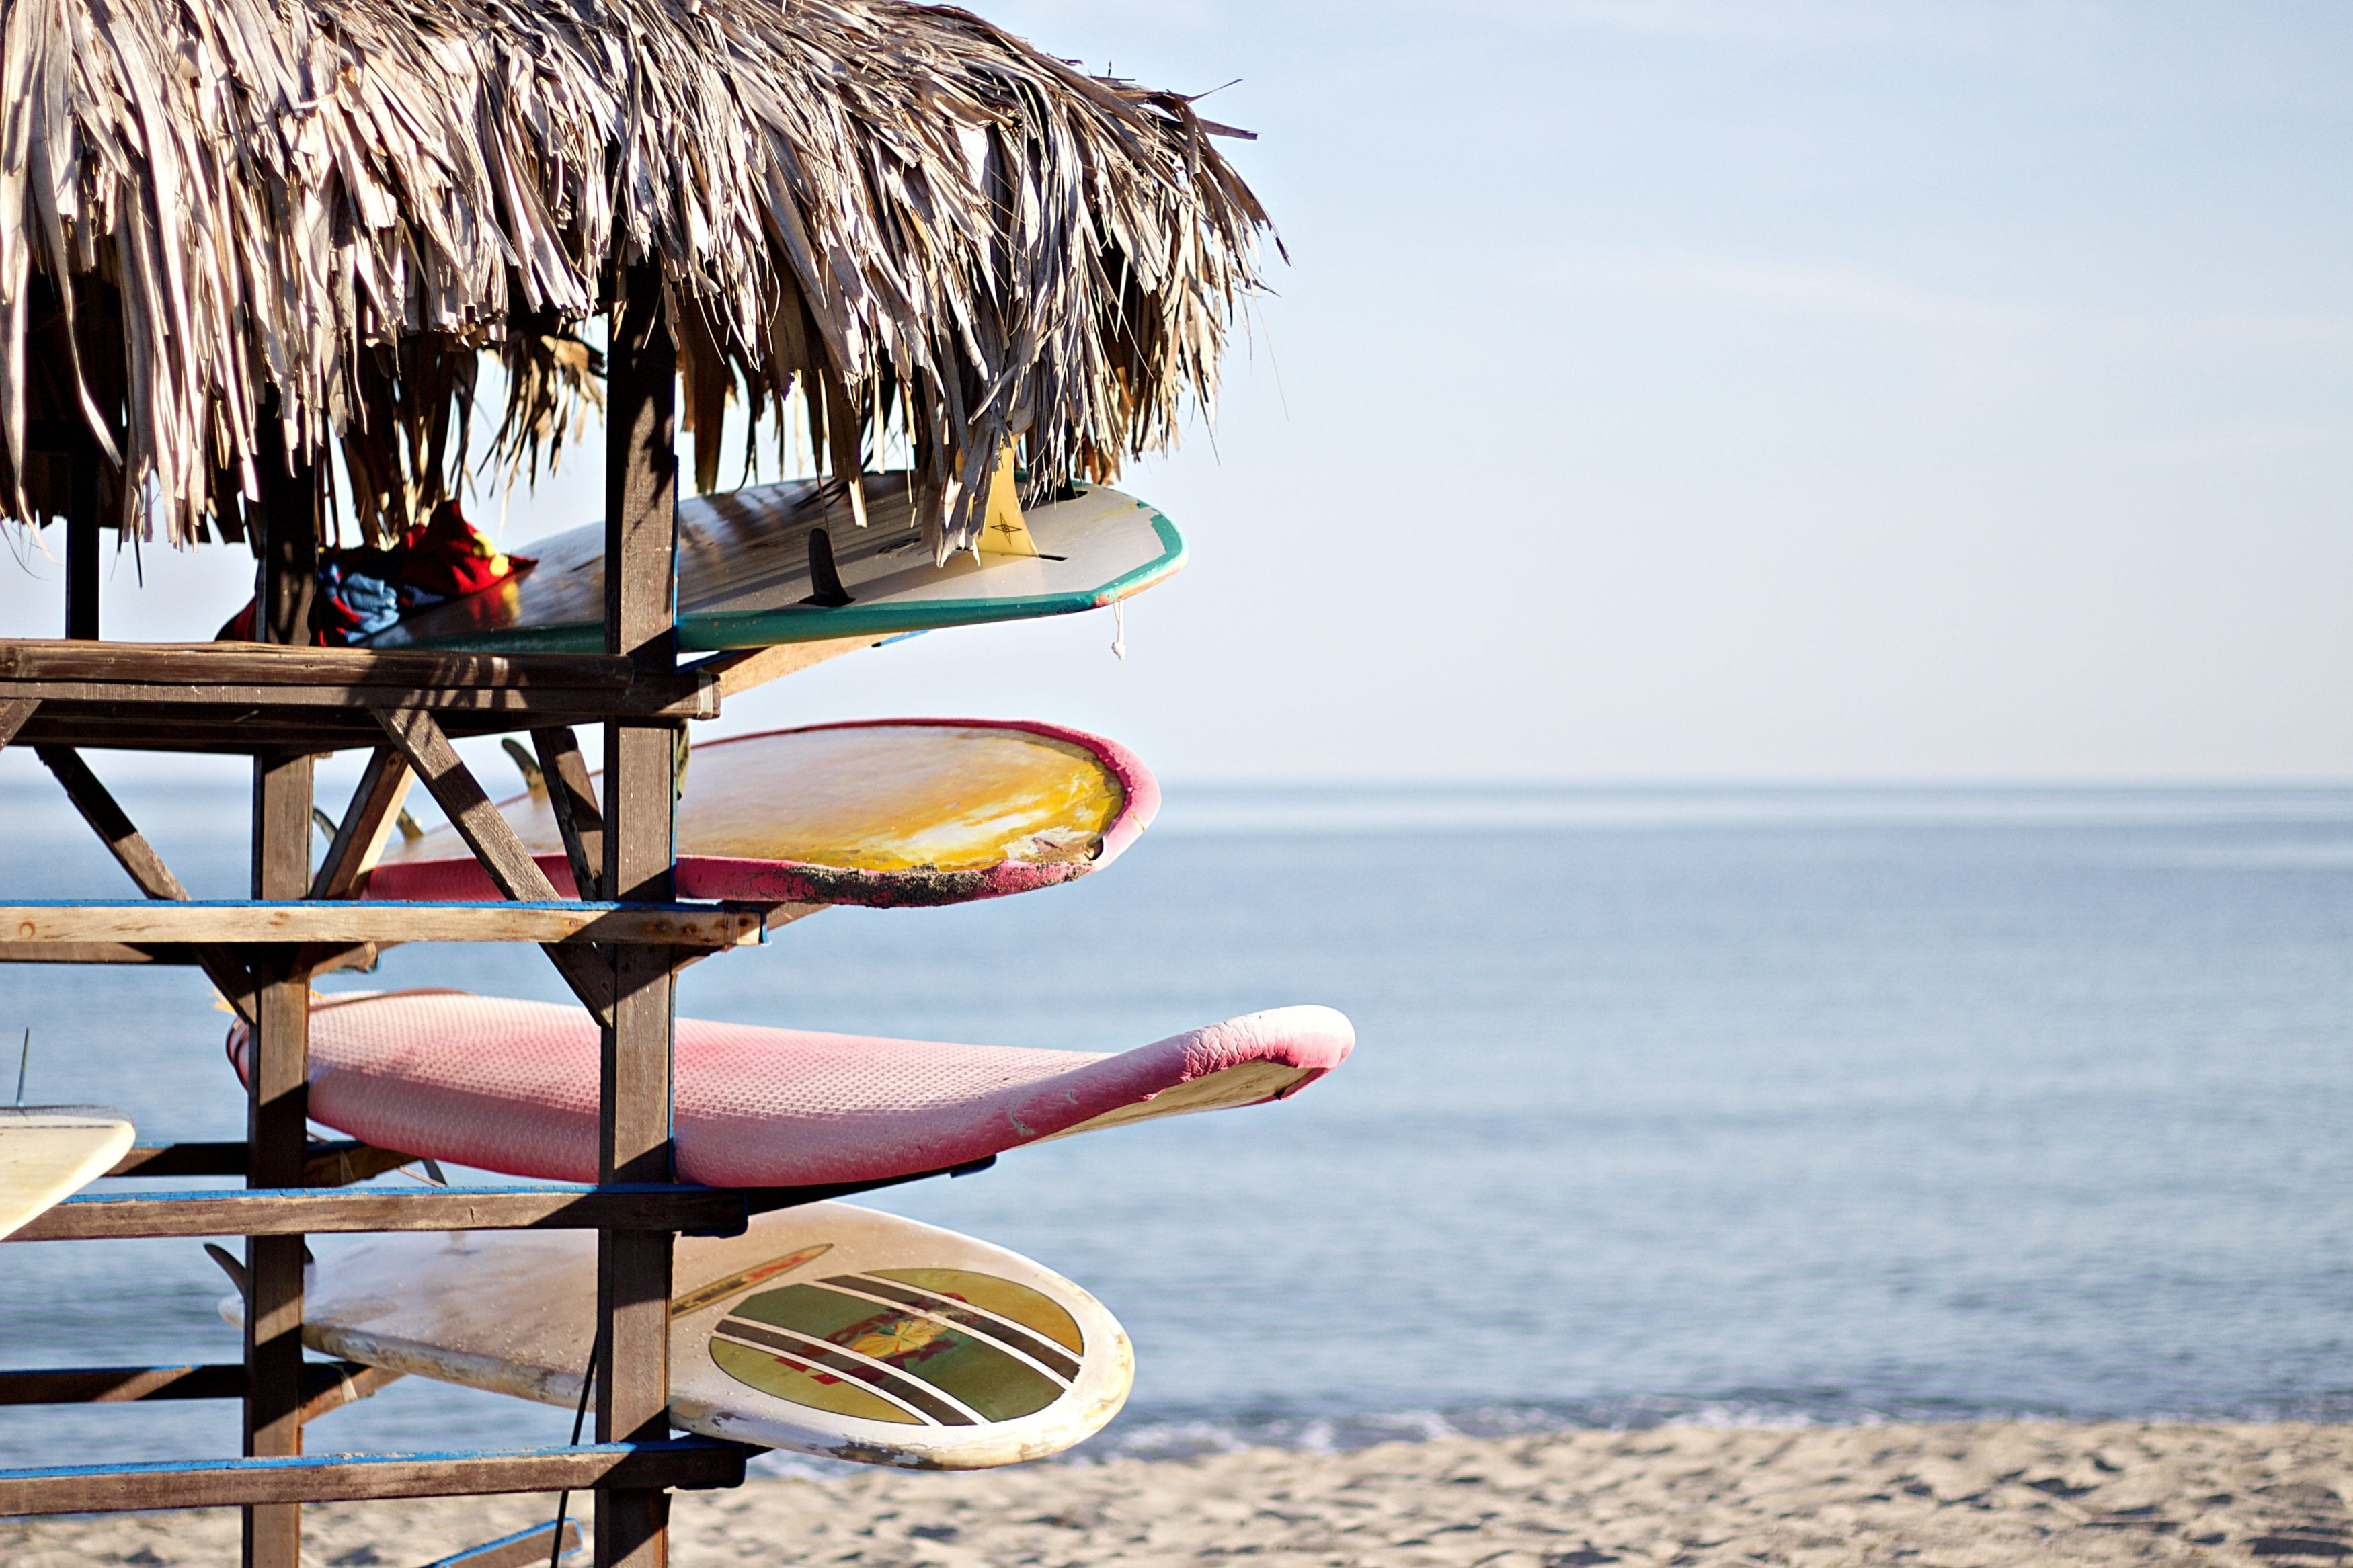 ccd7427afe7 Beat the Heat  What to Pack for Warm Weather Vacations - Tortuga ...